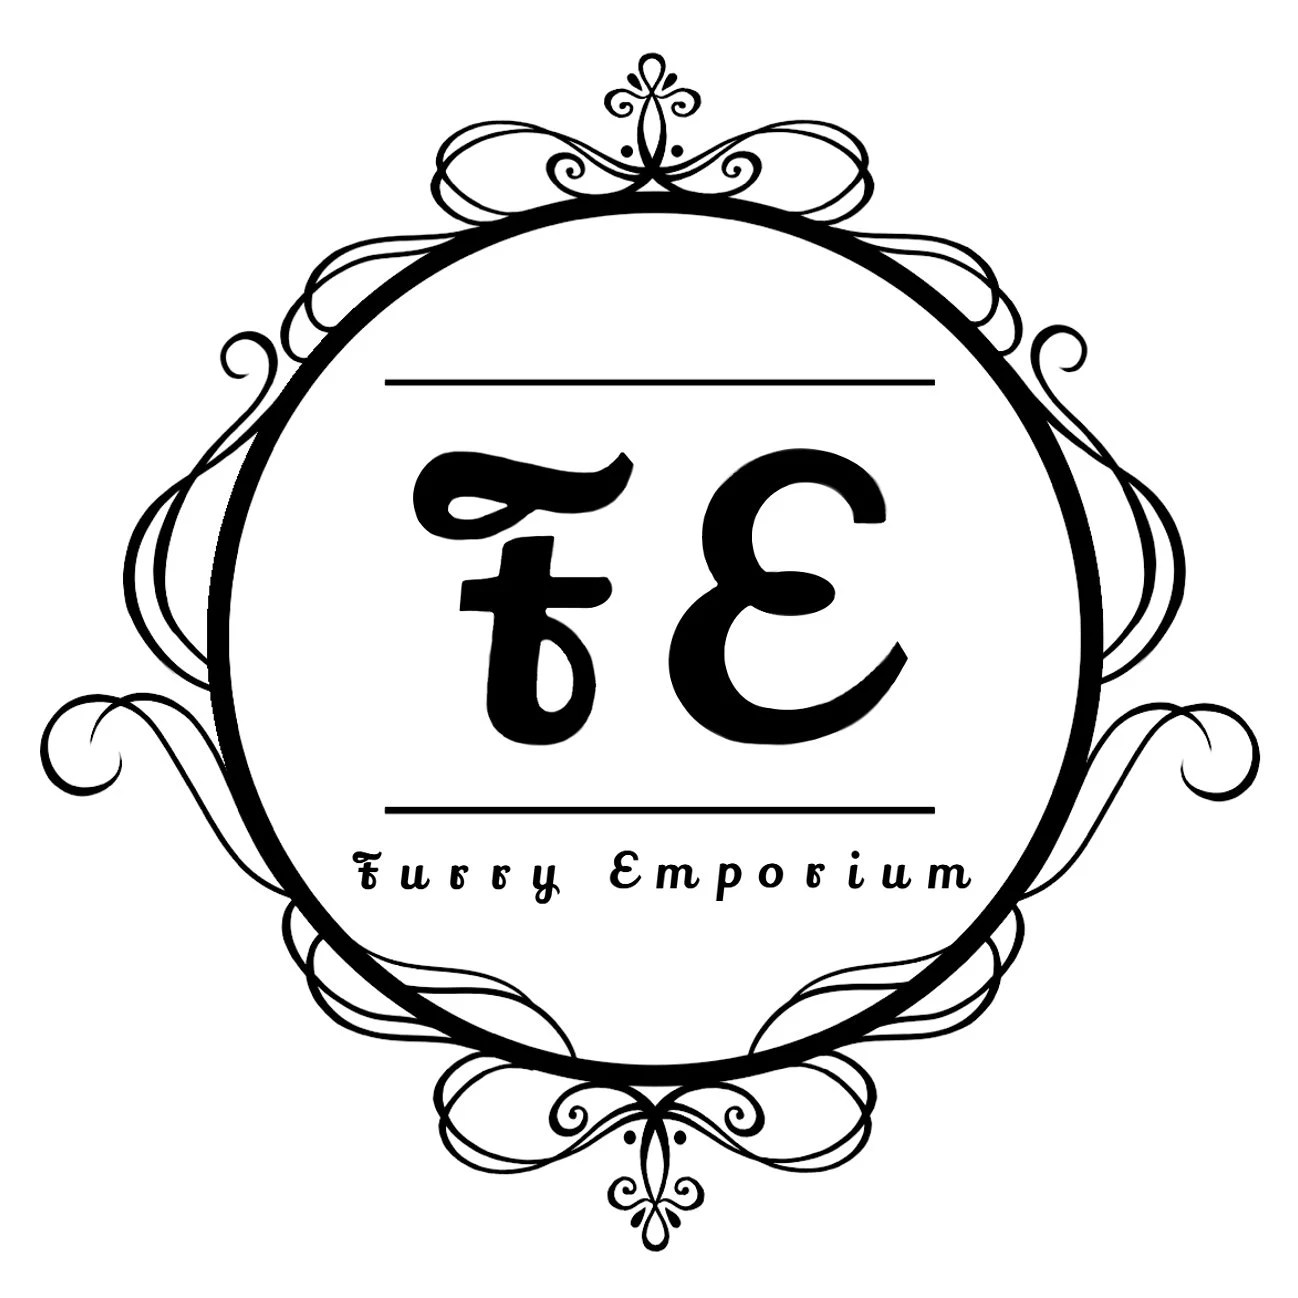 Handcrafted faux fur ears & tails since 2015 by FurryEmporium